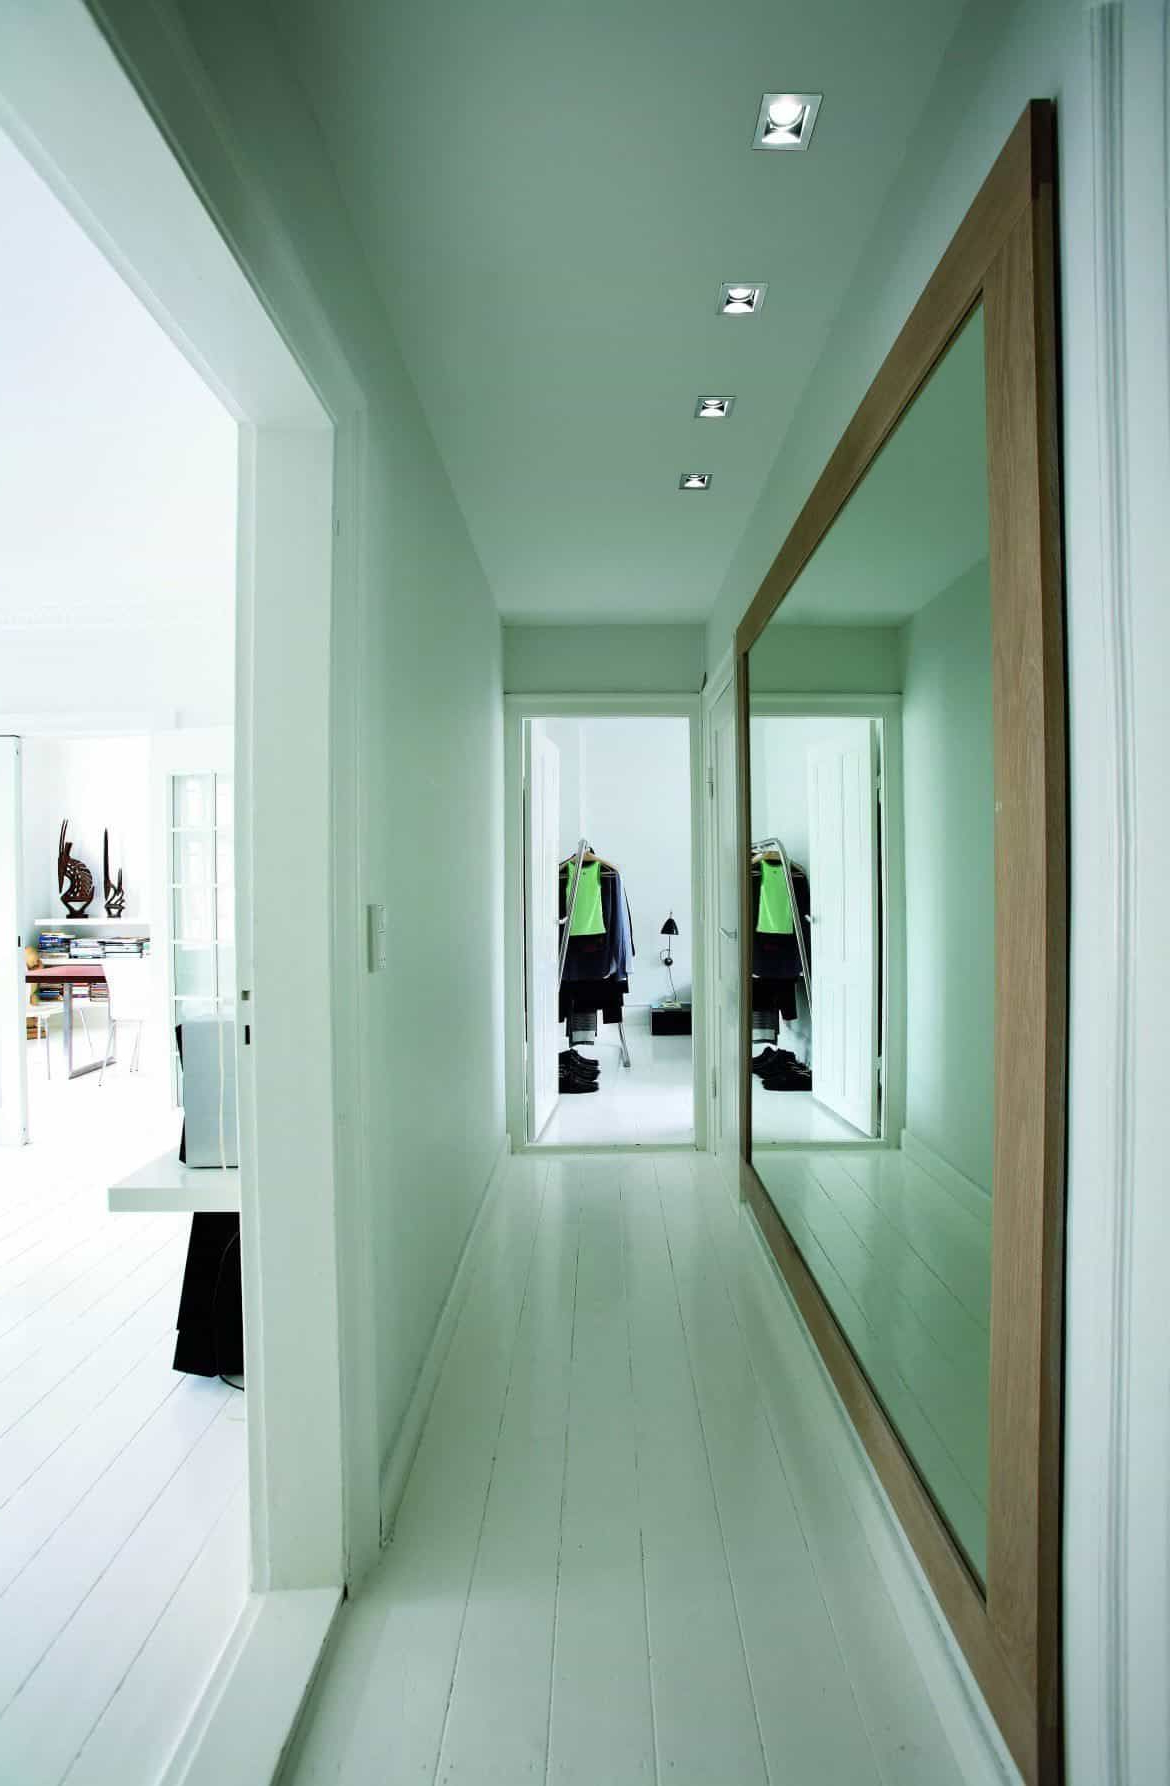 Wall Mirrors For Hallway With Regard To Most Recently Released Hallway With Large Framed Wall Mirror In White Walls (View 1 of 20)